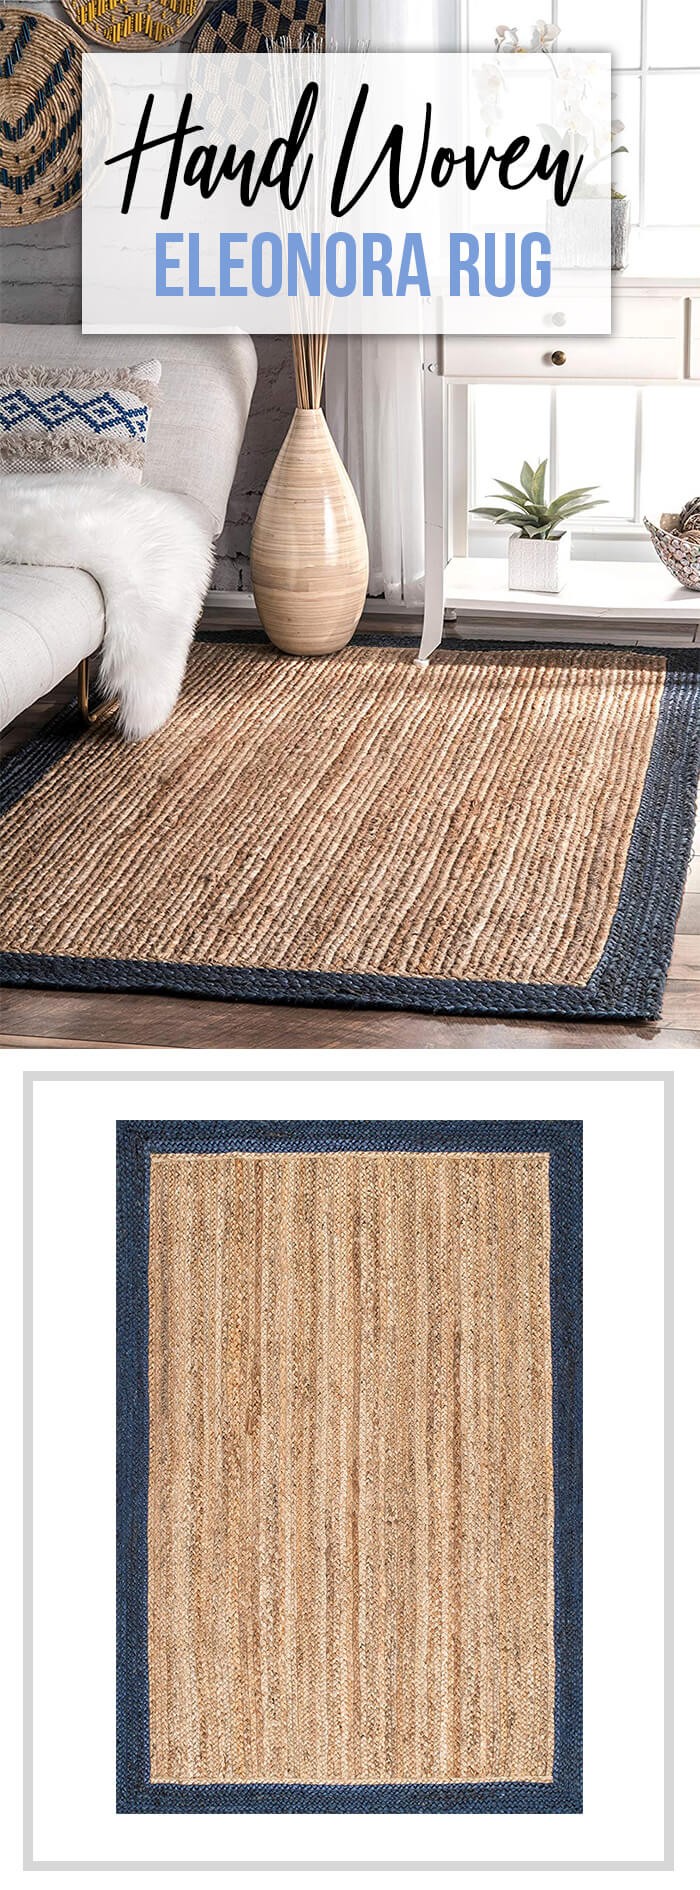 Comfortable, Functional & Eco-Friendly Woven Eleanora Rug